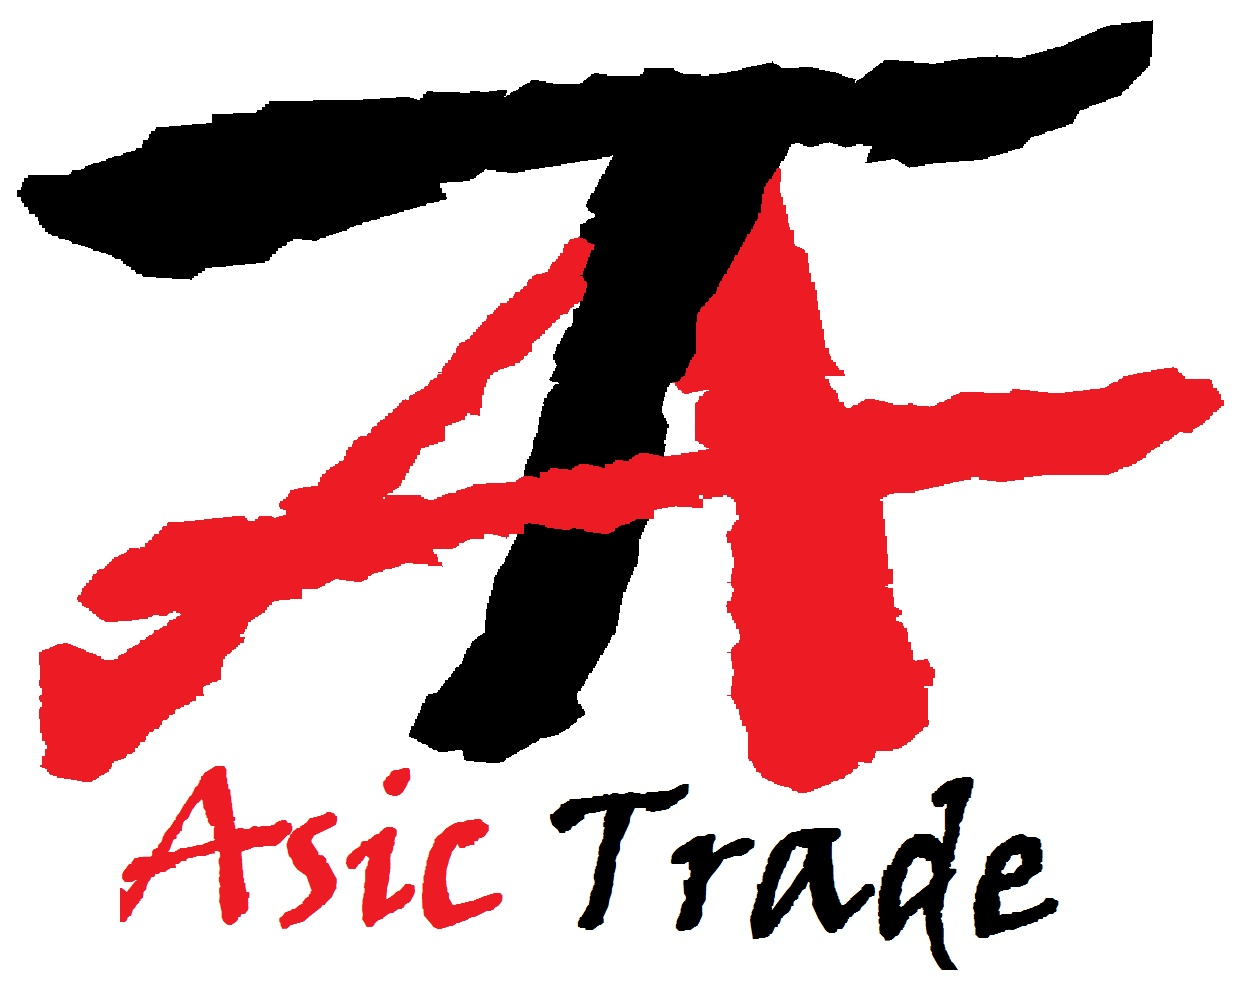 AsicTrade